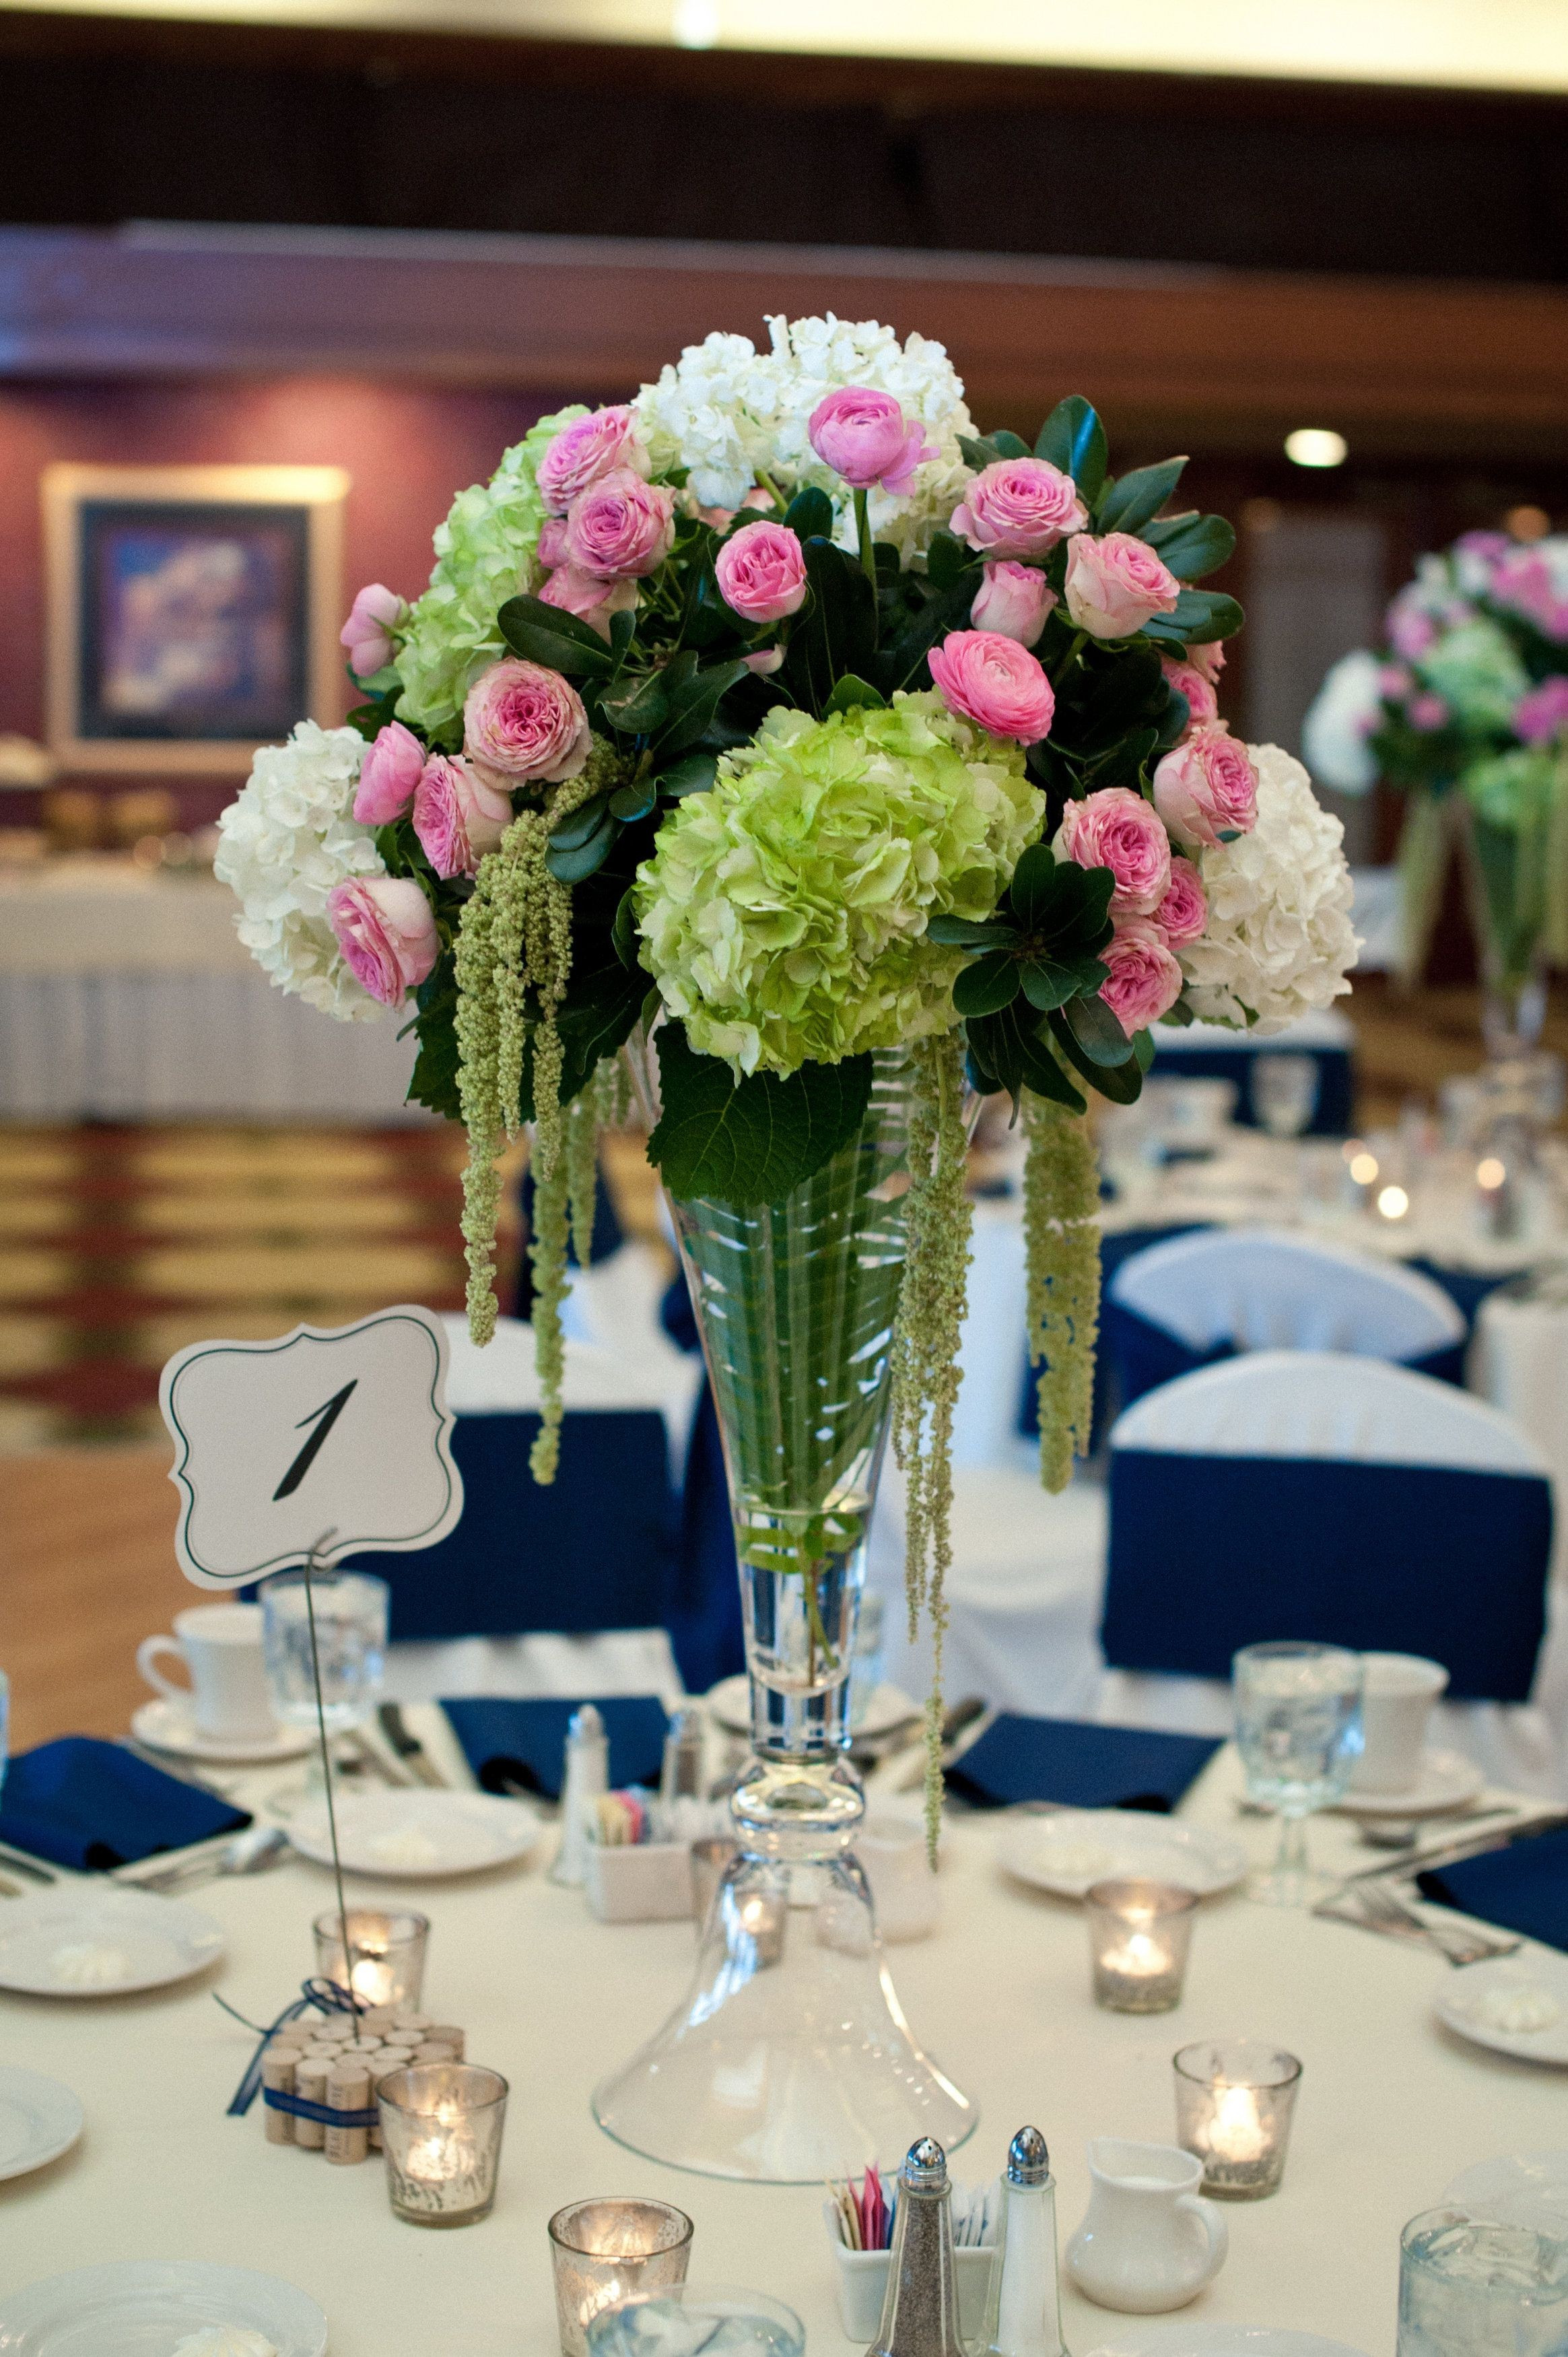 Roses with Vase Of Hydrangea Decorations Wedding Unique Cool Wedding Ideas as for H with Regard to Hydrangea Decorations Wedding Elegant Tall Wedding Centerpieces Green Hydrangea Pink Garden Roses White Of Hydrangea Decorations